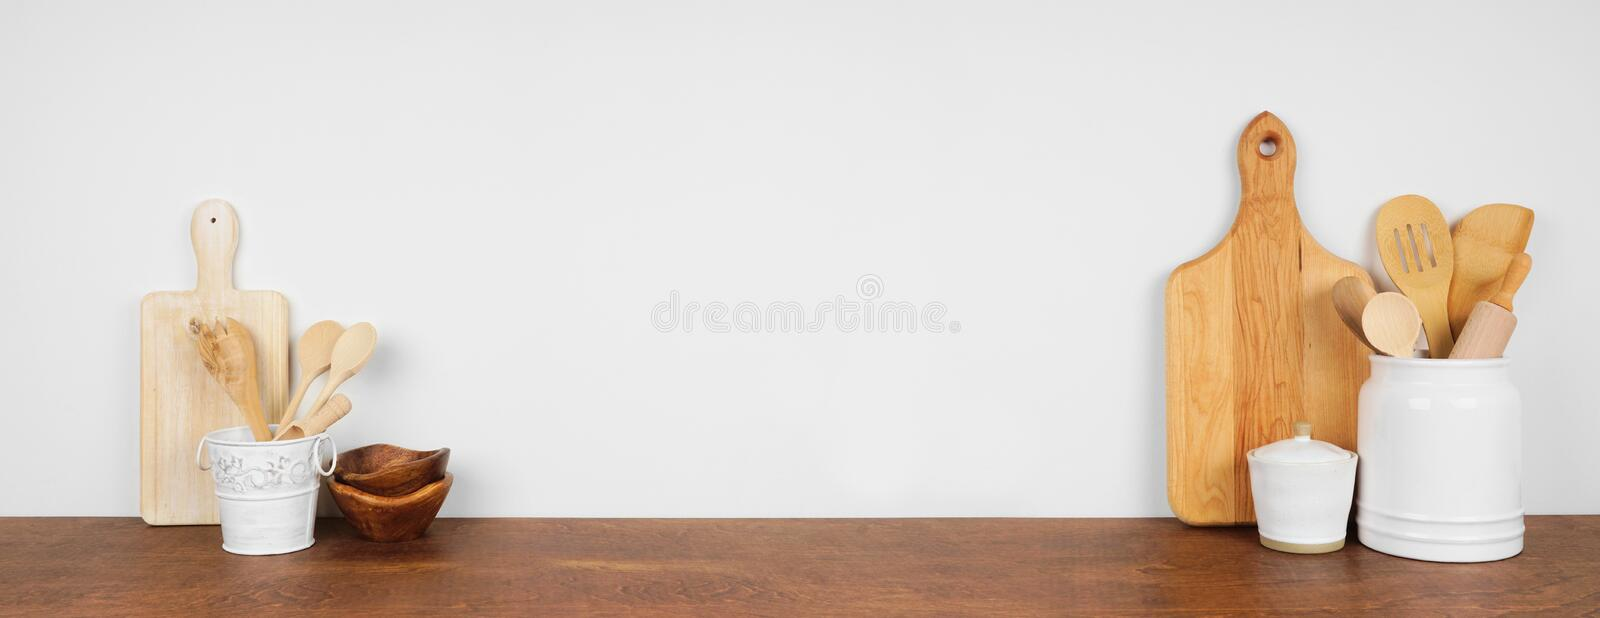 Kitchenware and utensils on a wood shelf or counter. Banner with copy space against a white wall. royalty free stock photo